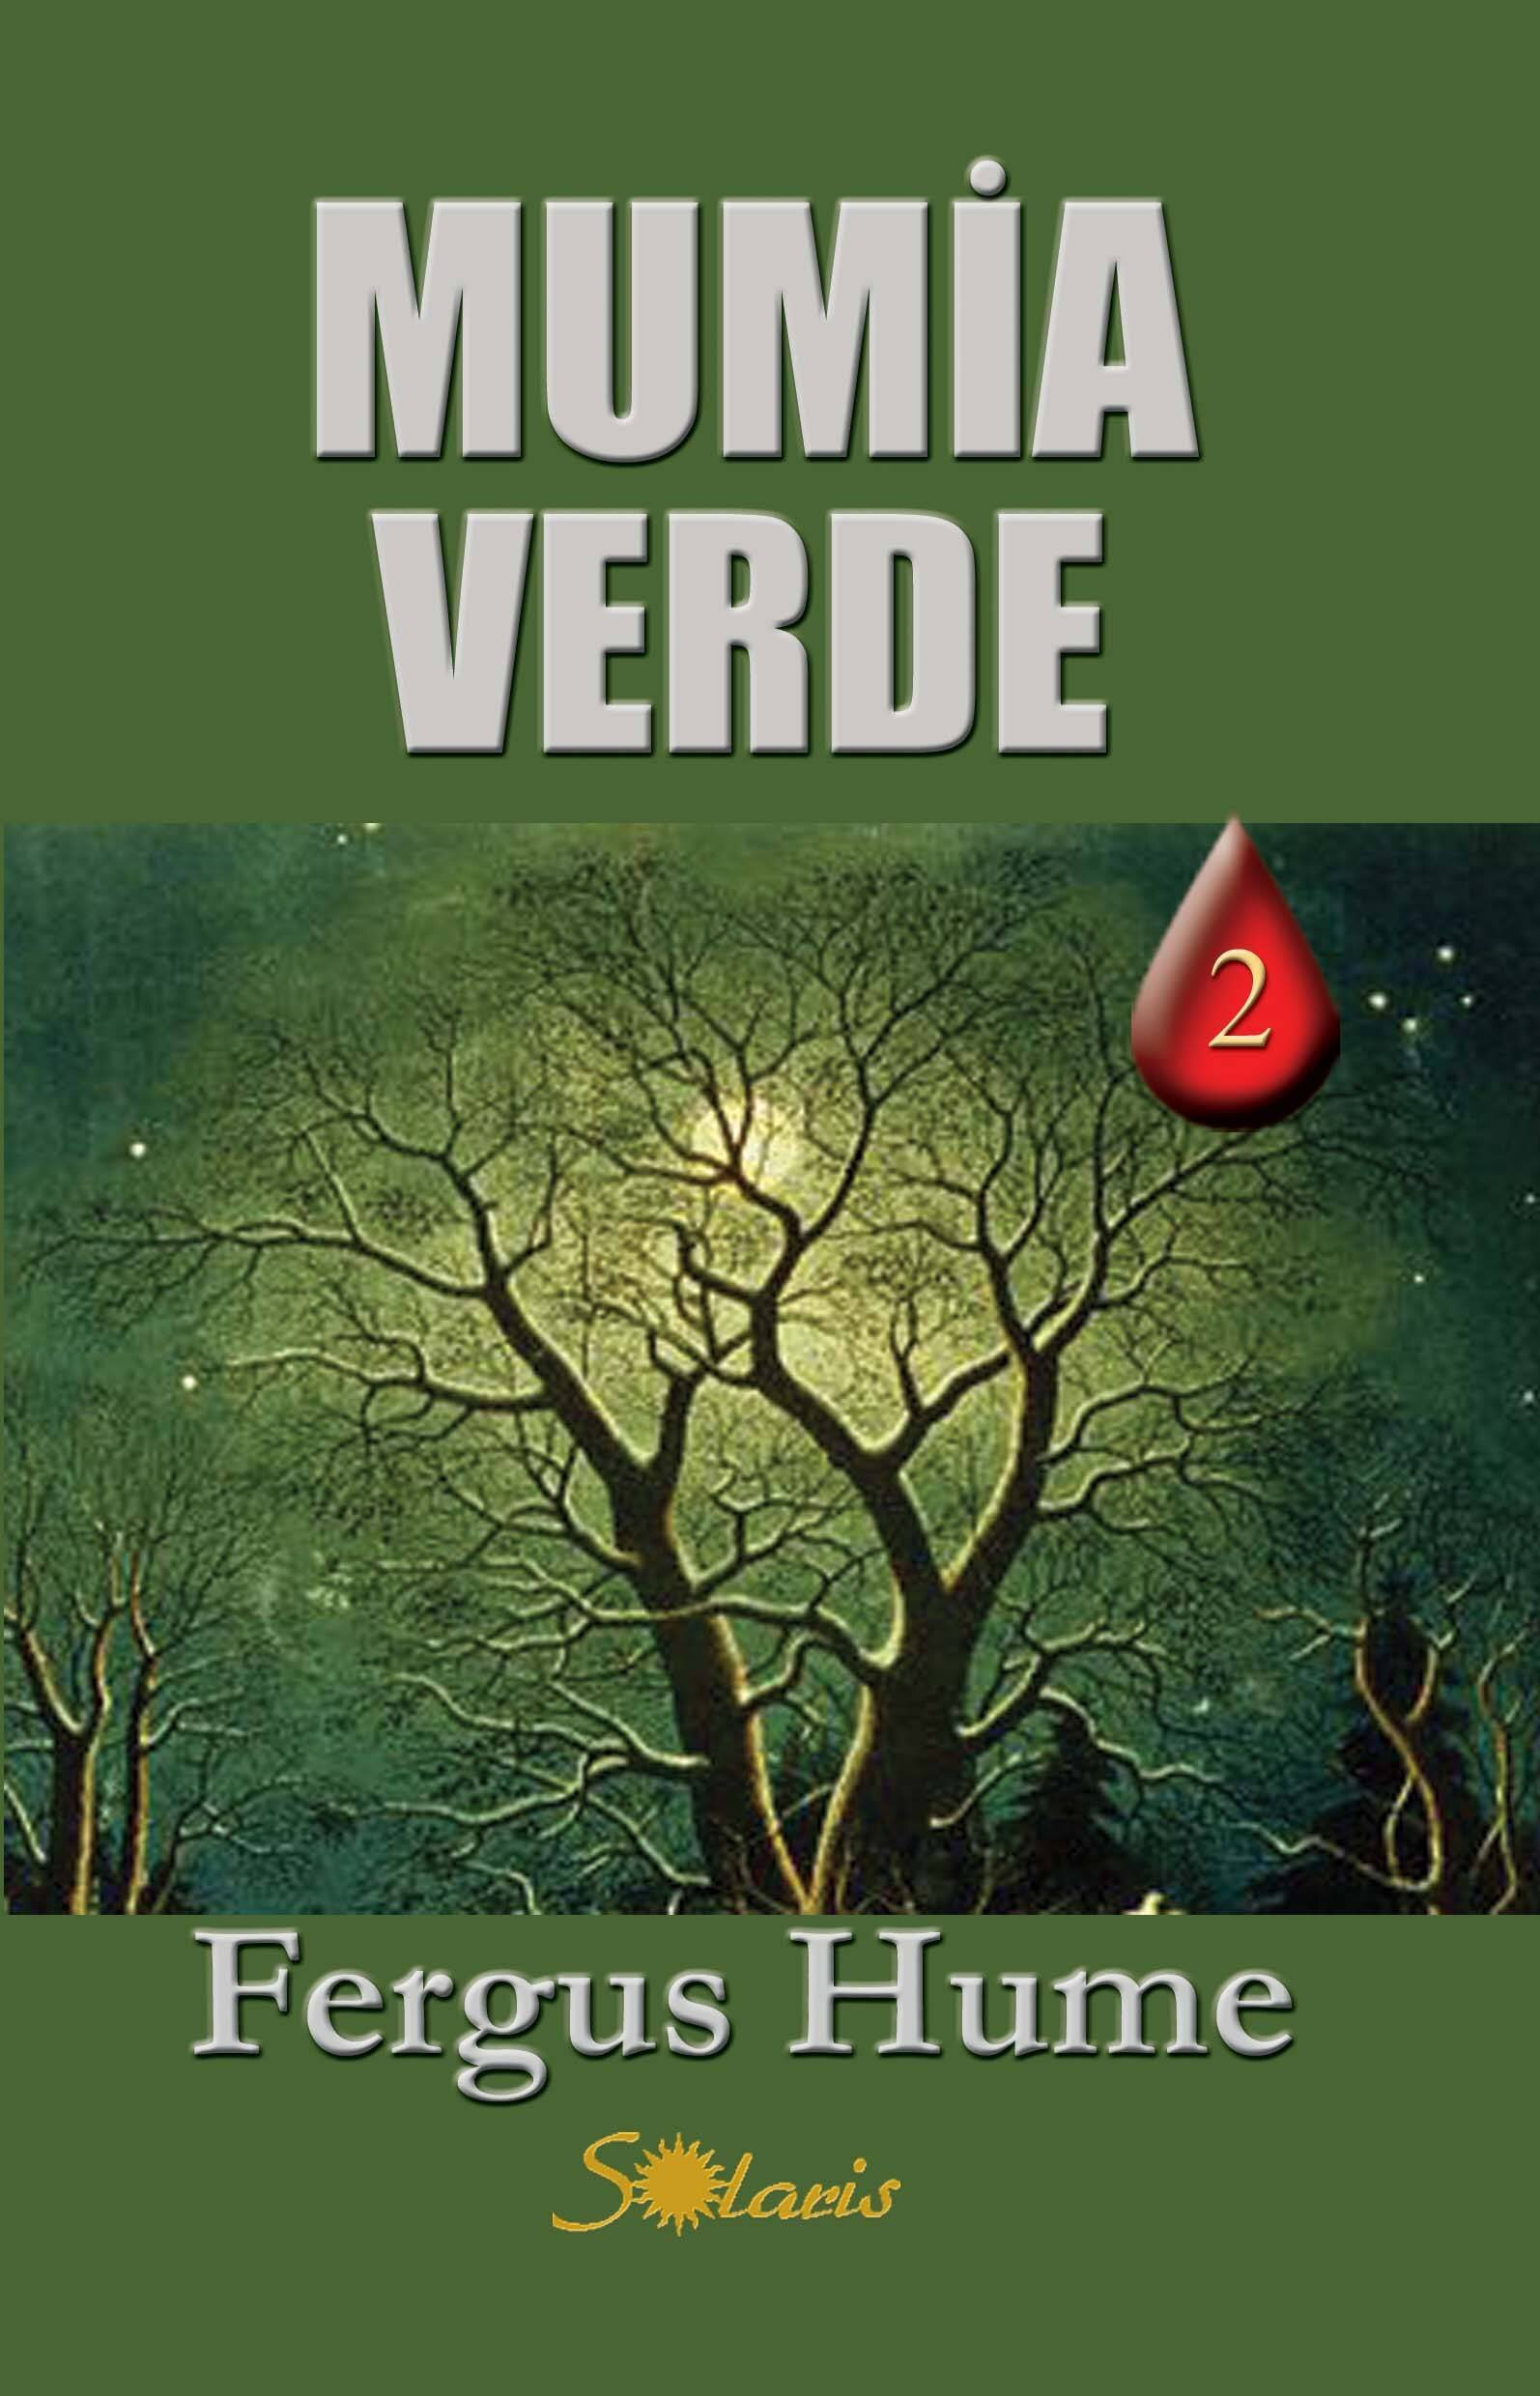 Mumia verde PDF (Download eBook)